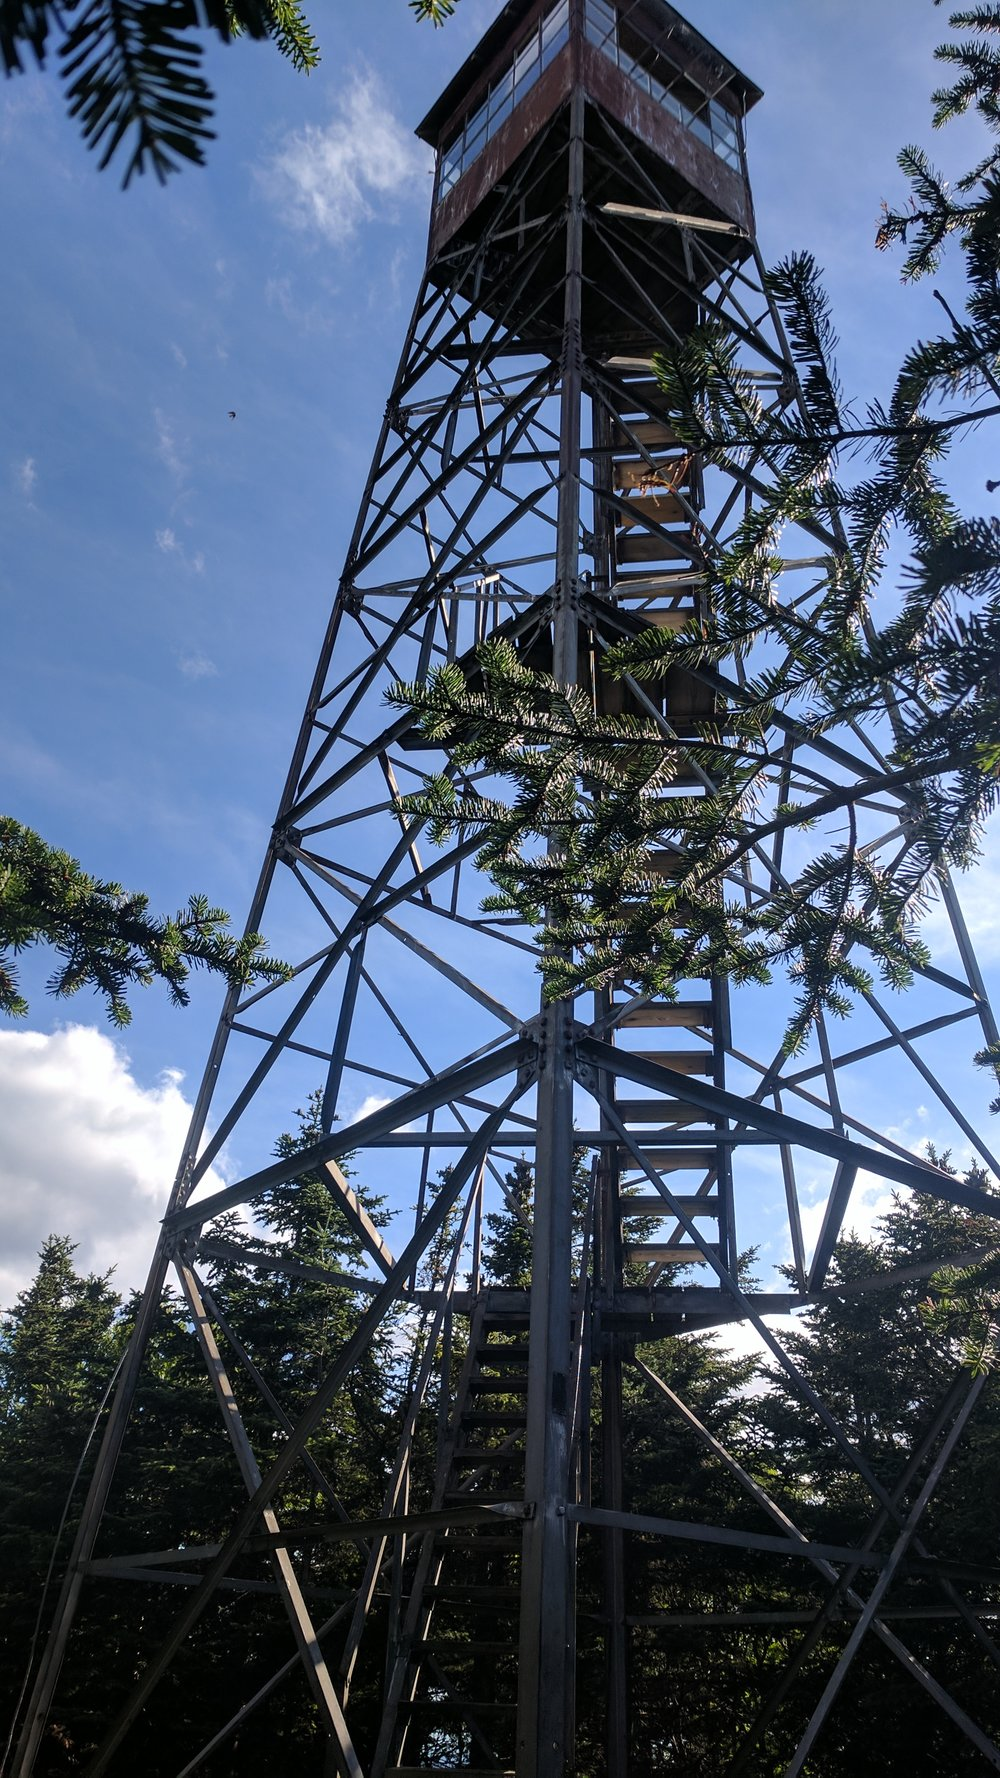 Another fire tower.